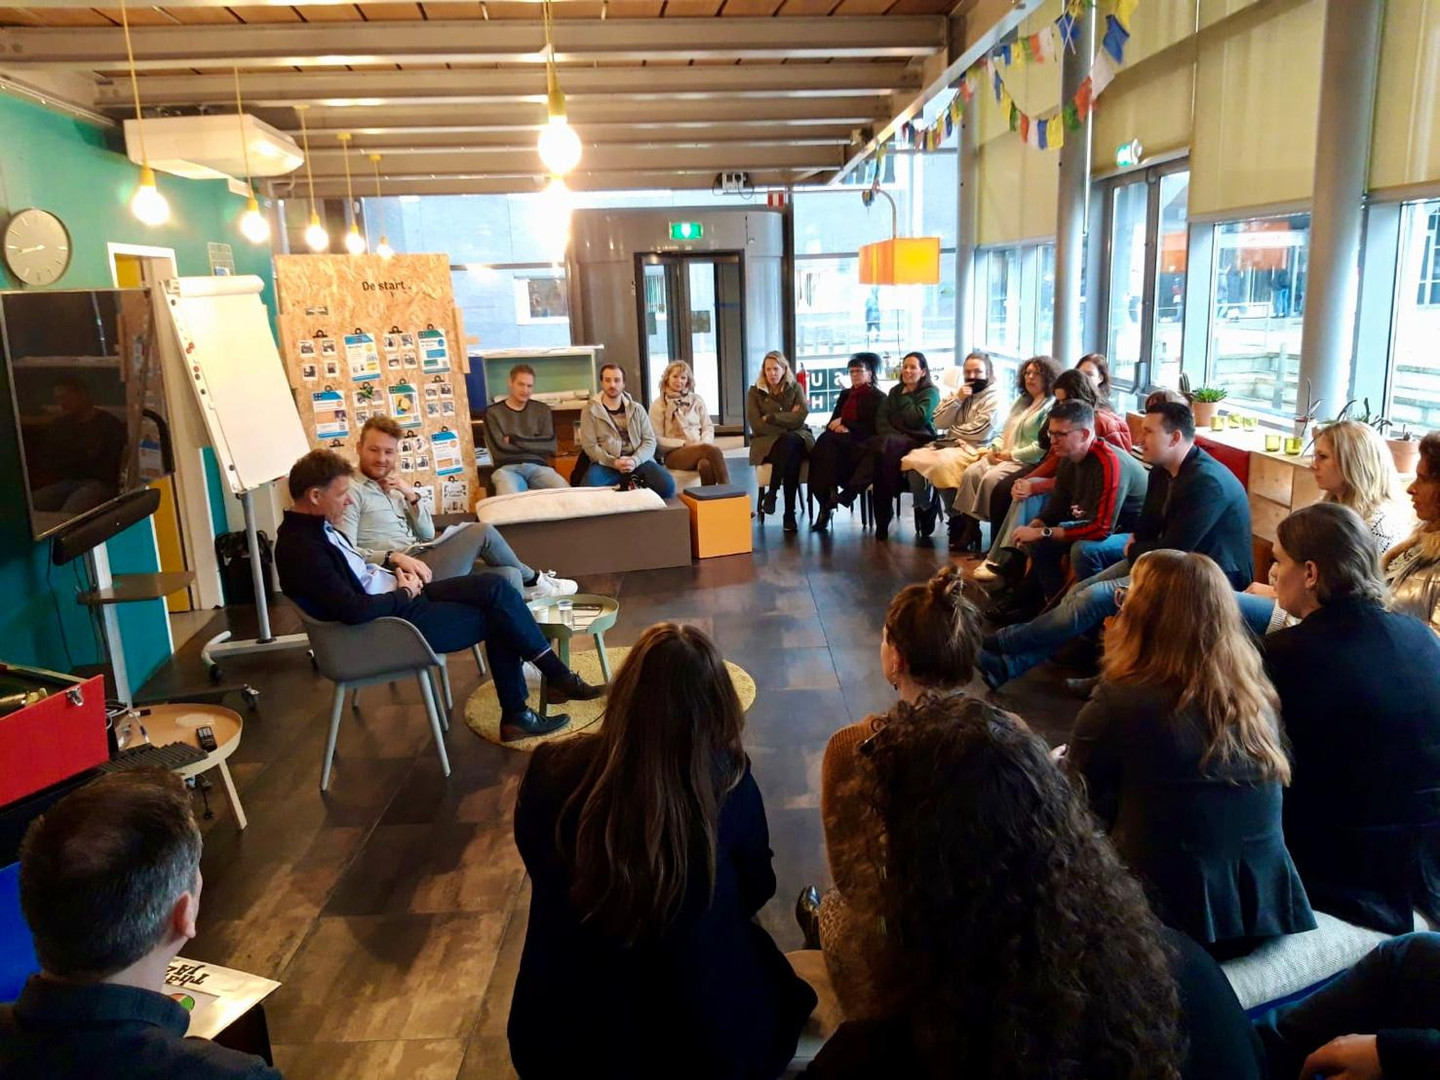 Presentatie Ask me anything